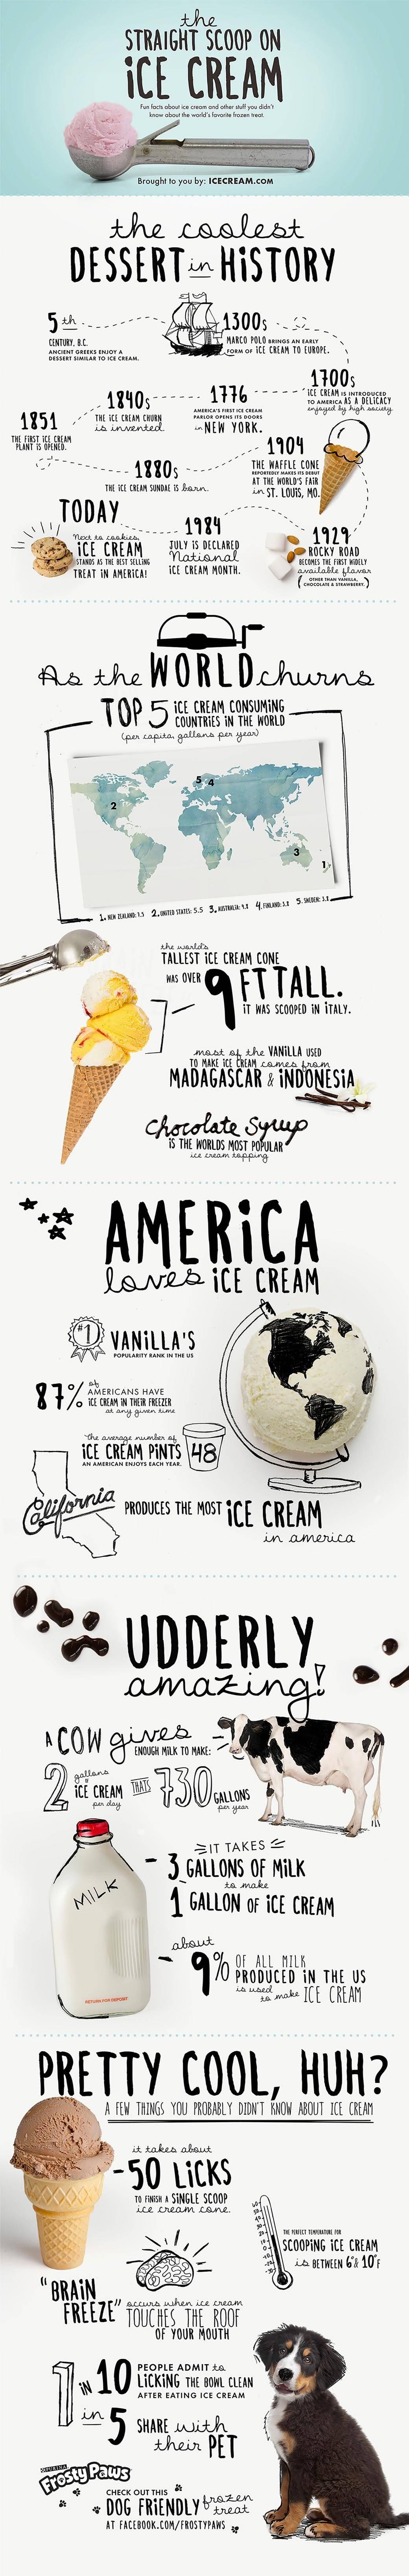 The straight scoop on ice cream #infographic